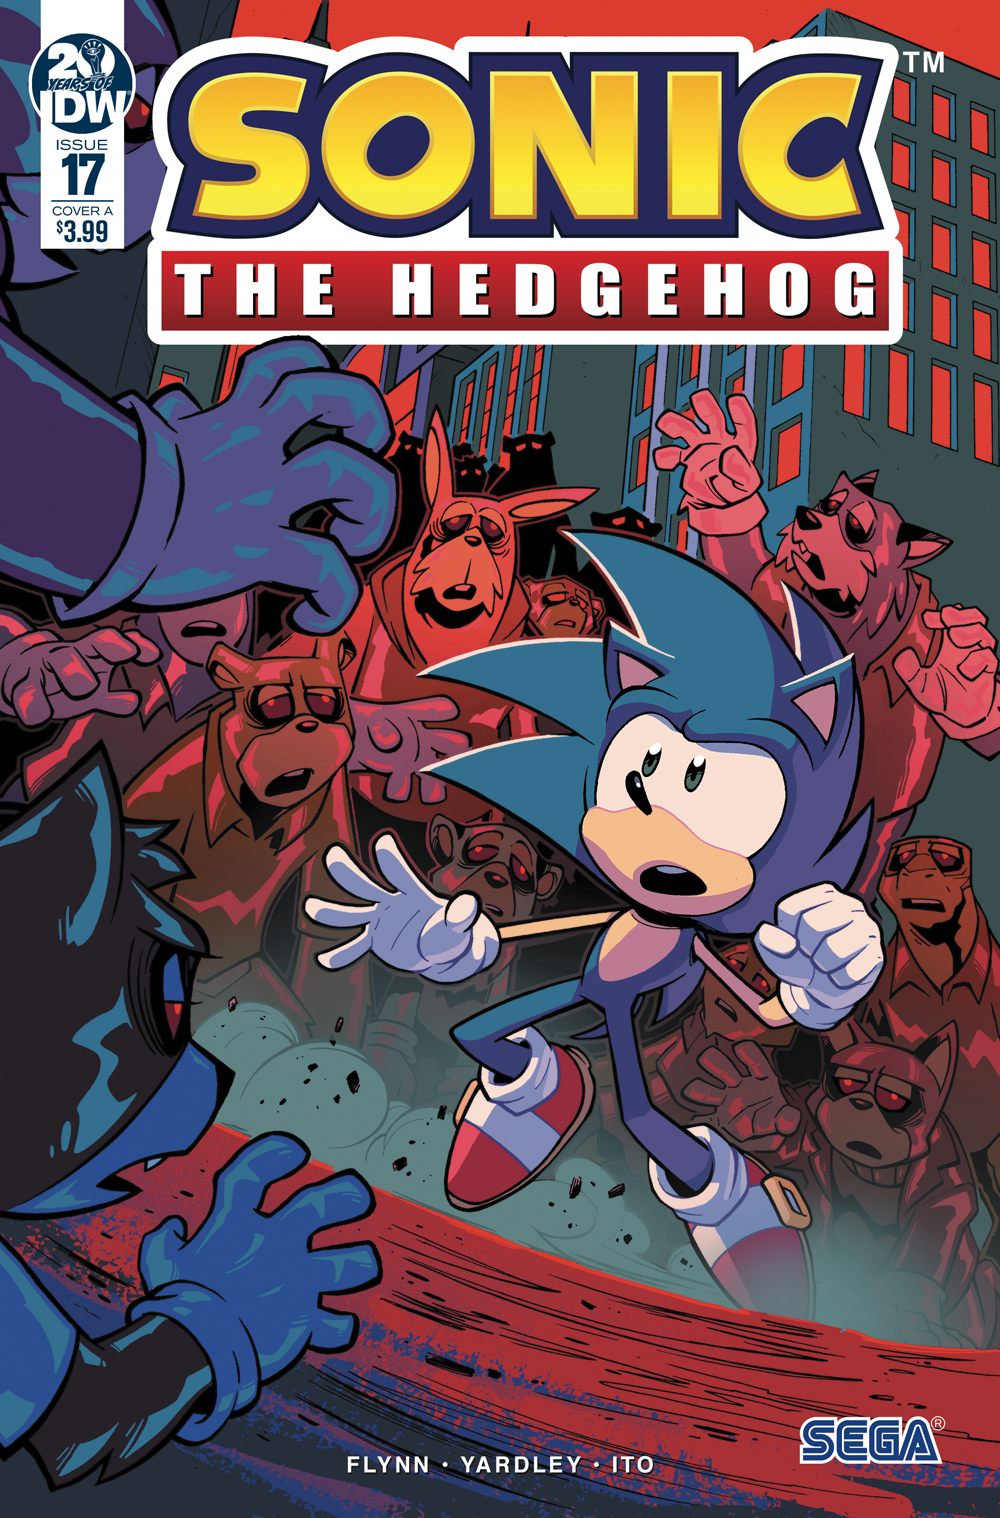 Sonic Source – Your Source for the Lastest IDW Sonic News